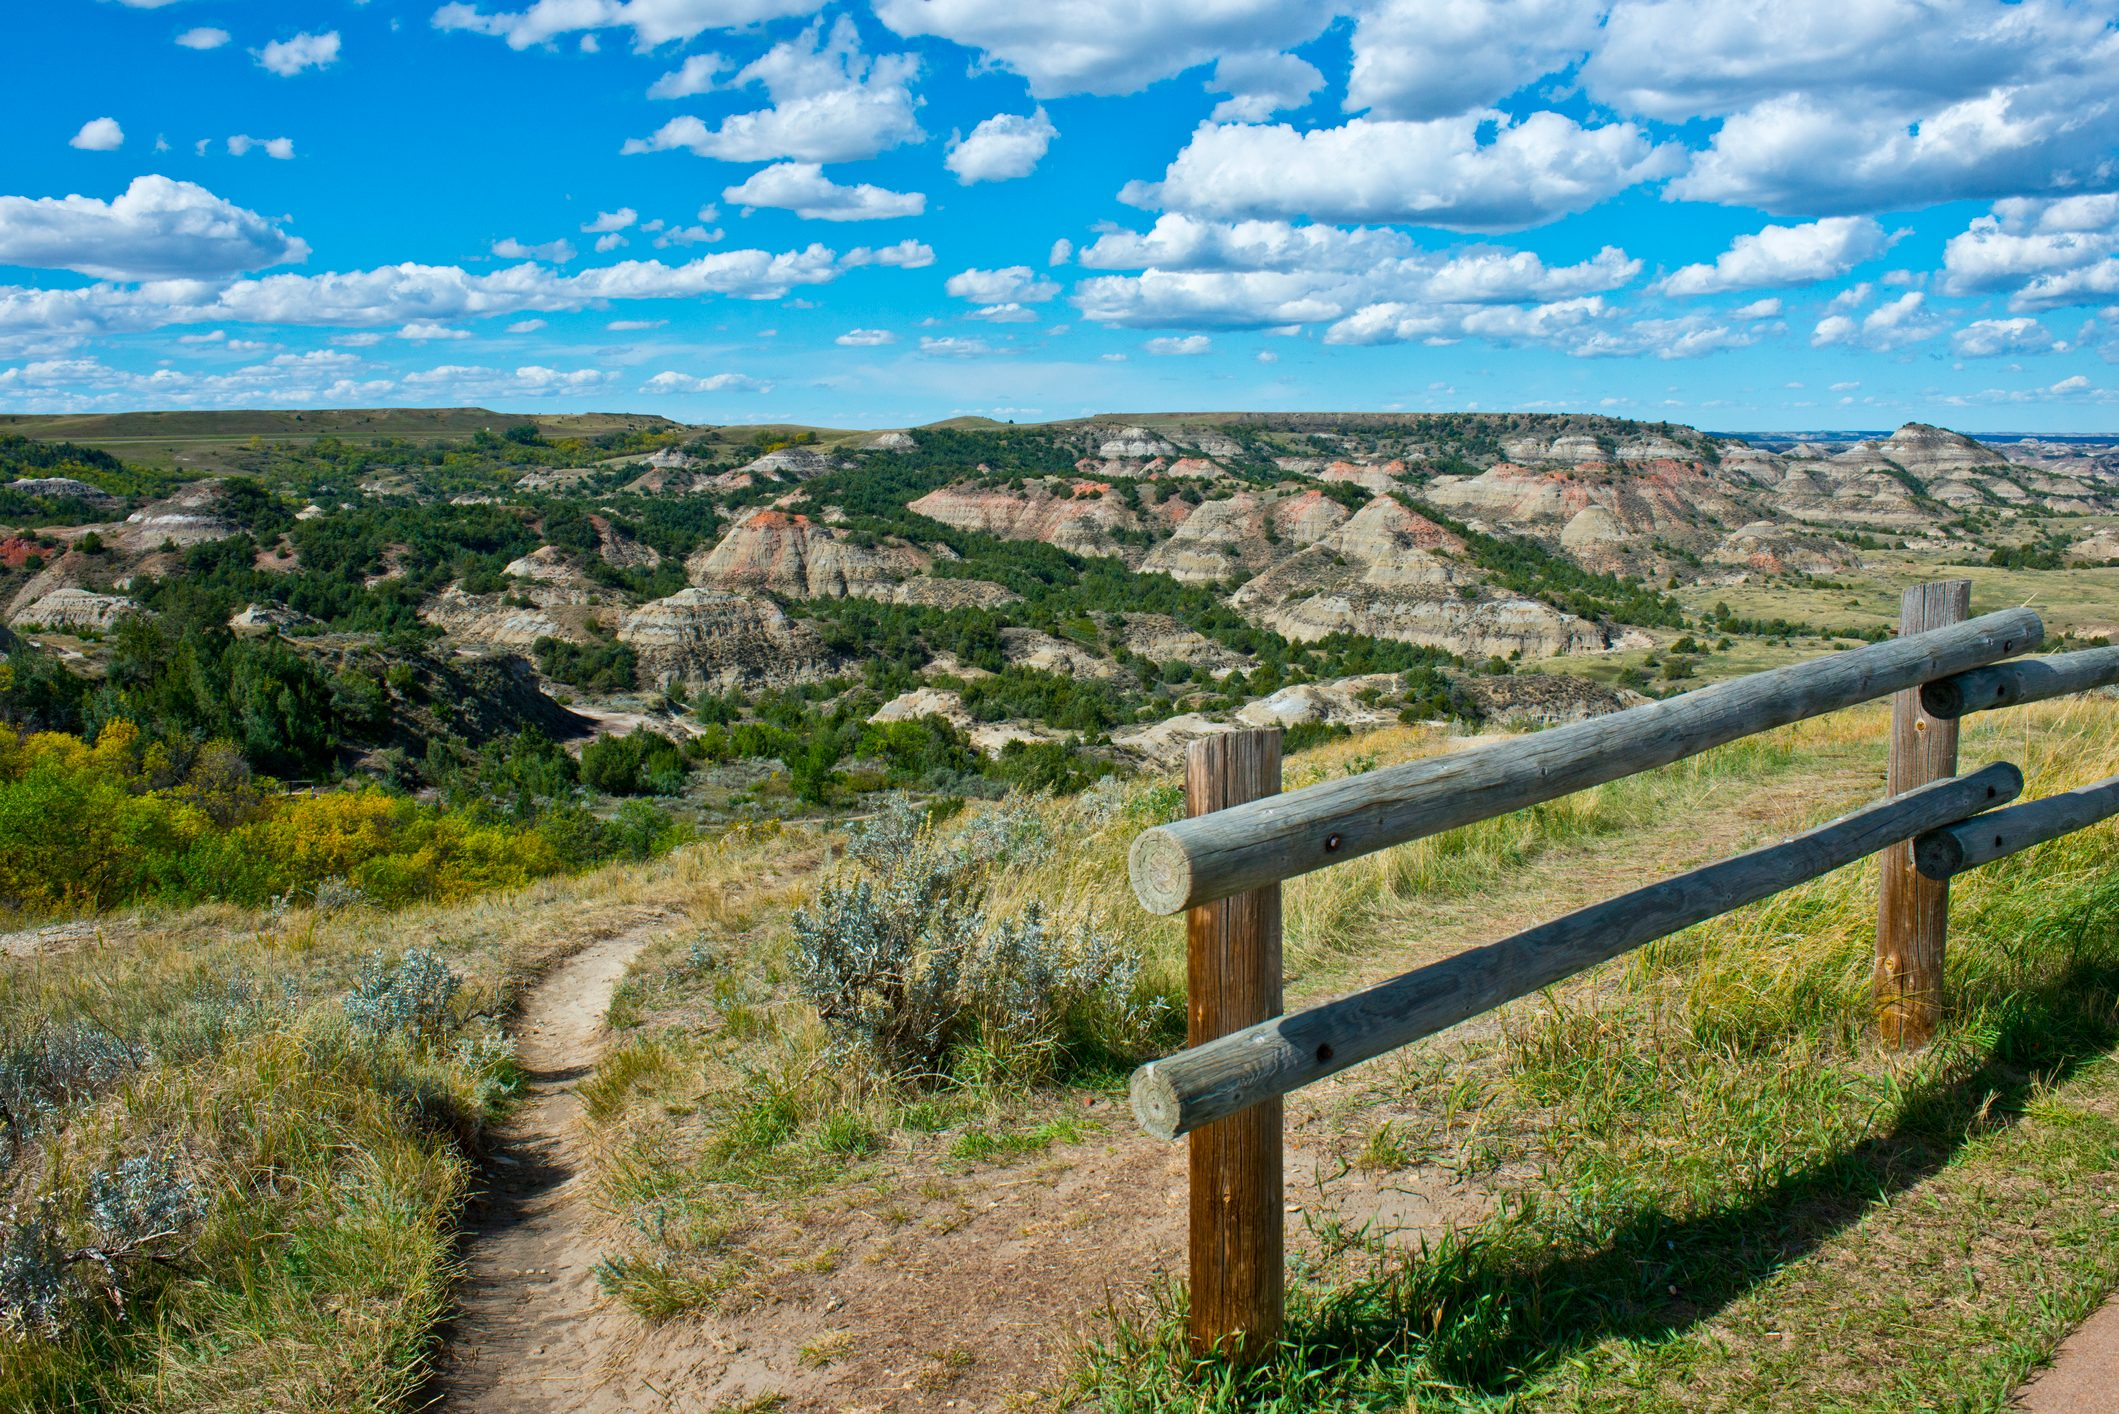 Painted Canyon Overlook, South Unit, Theodore Roosevelt National Park, Medora, North Dakota, USA